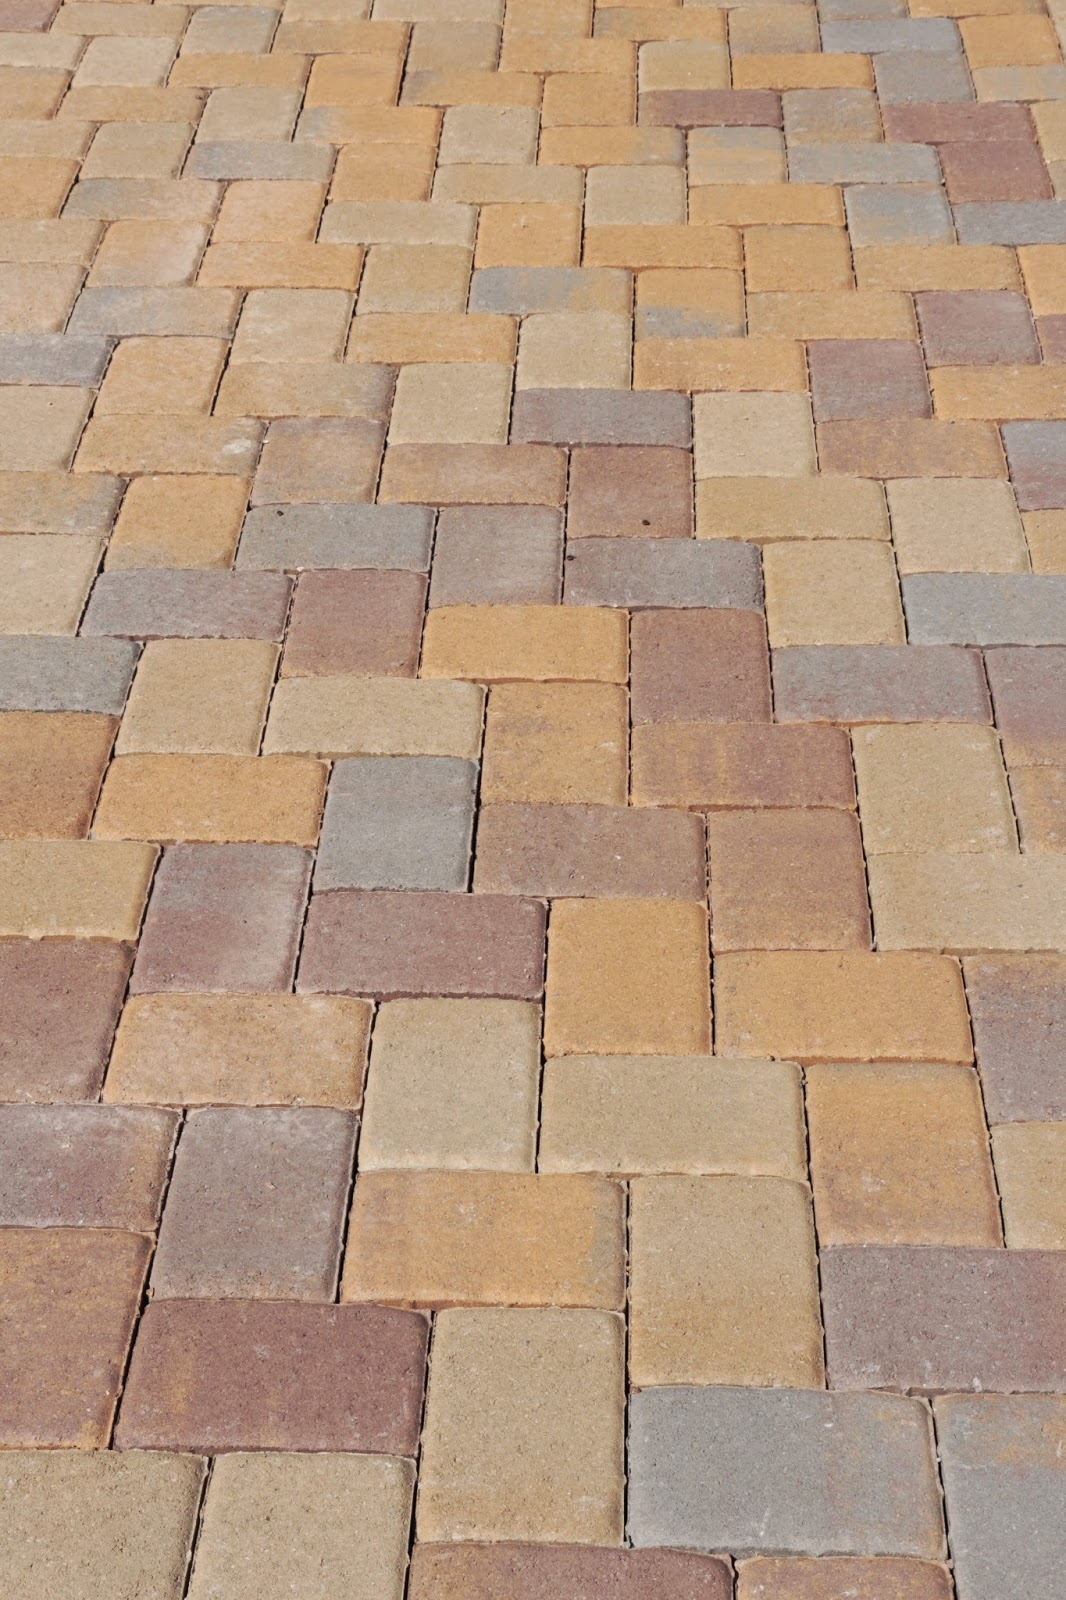 belgard pavers in toscana mohave mix, herringbone paver pattern